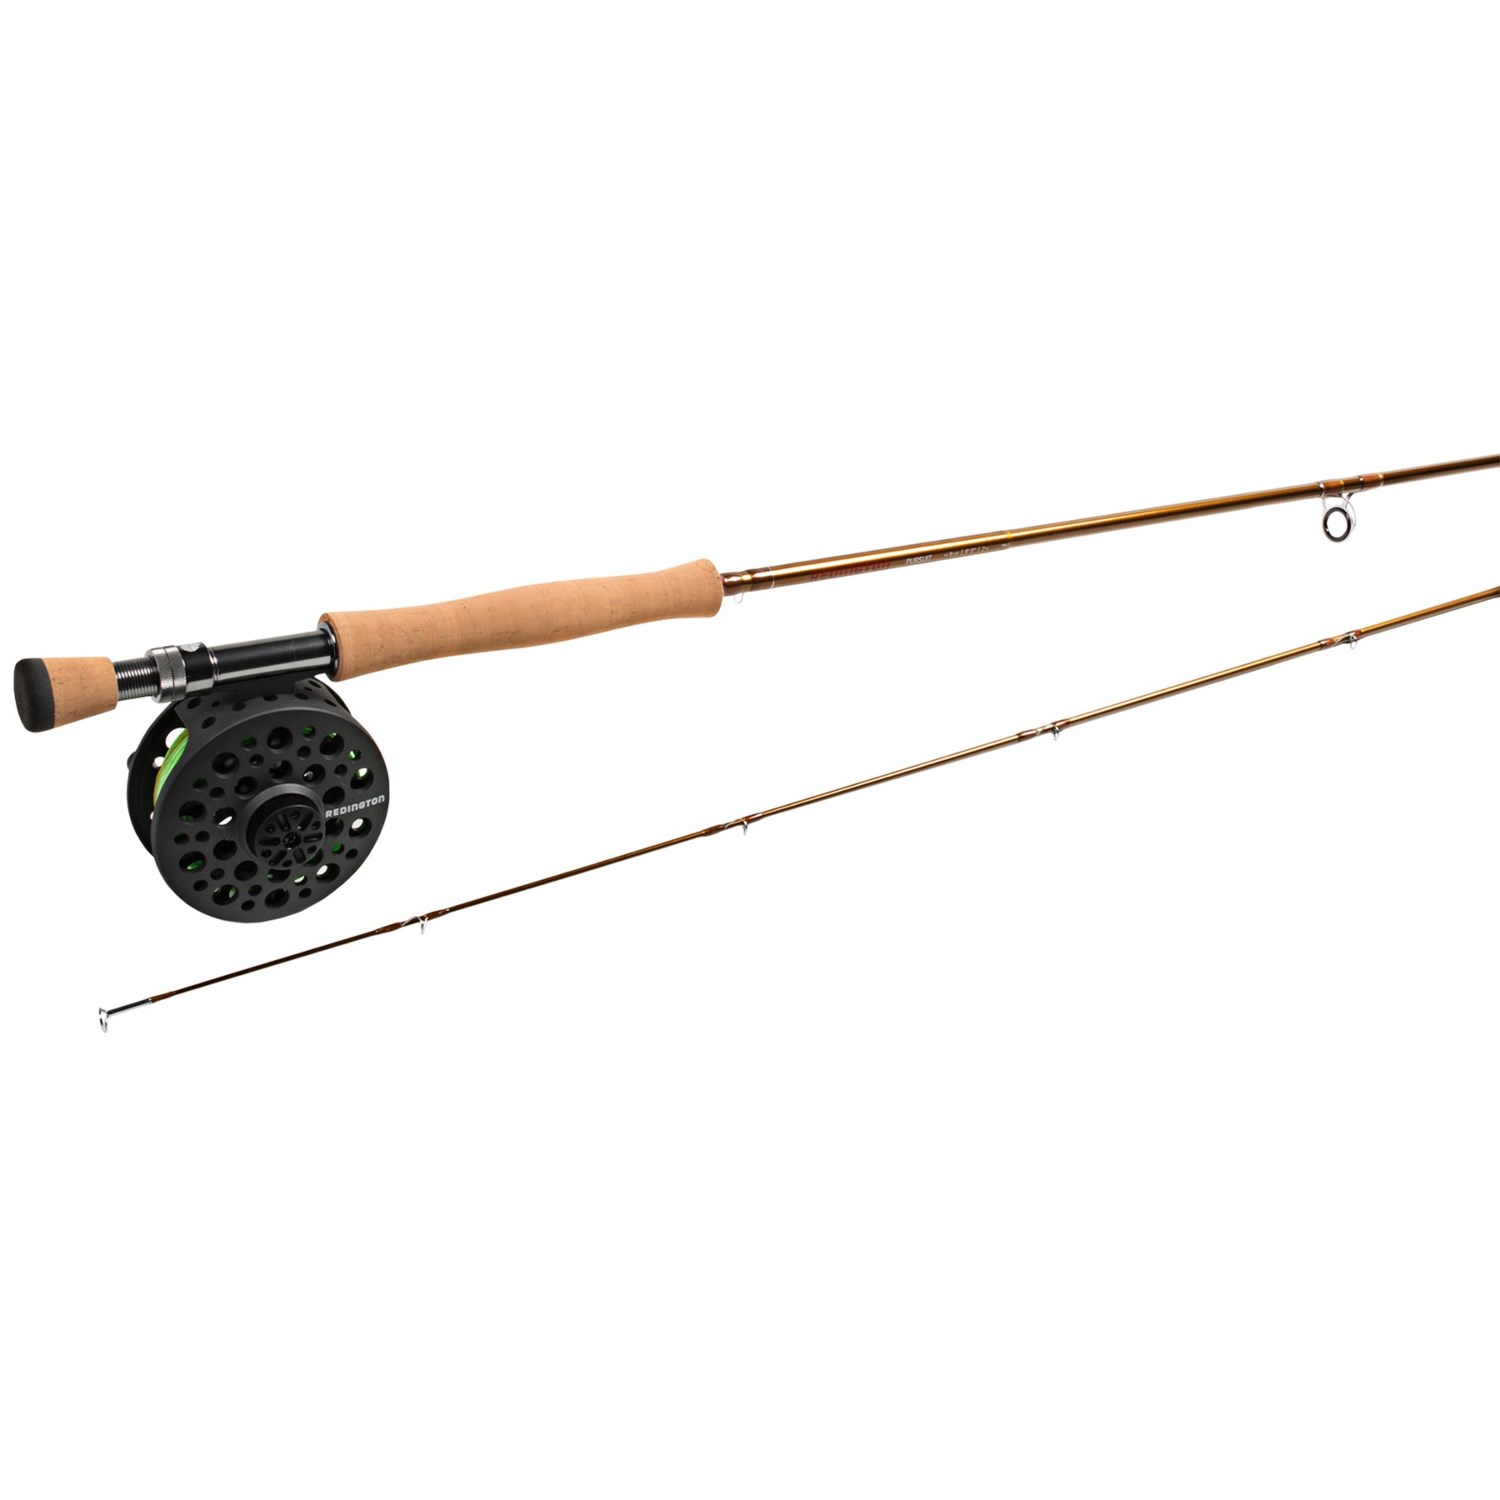 Redington pursuit fly fishing rod and reel outfit 9wt 2 for 2 piece fishing rod